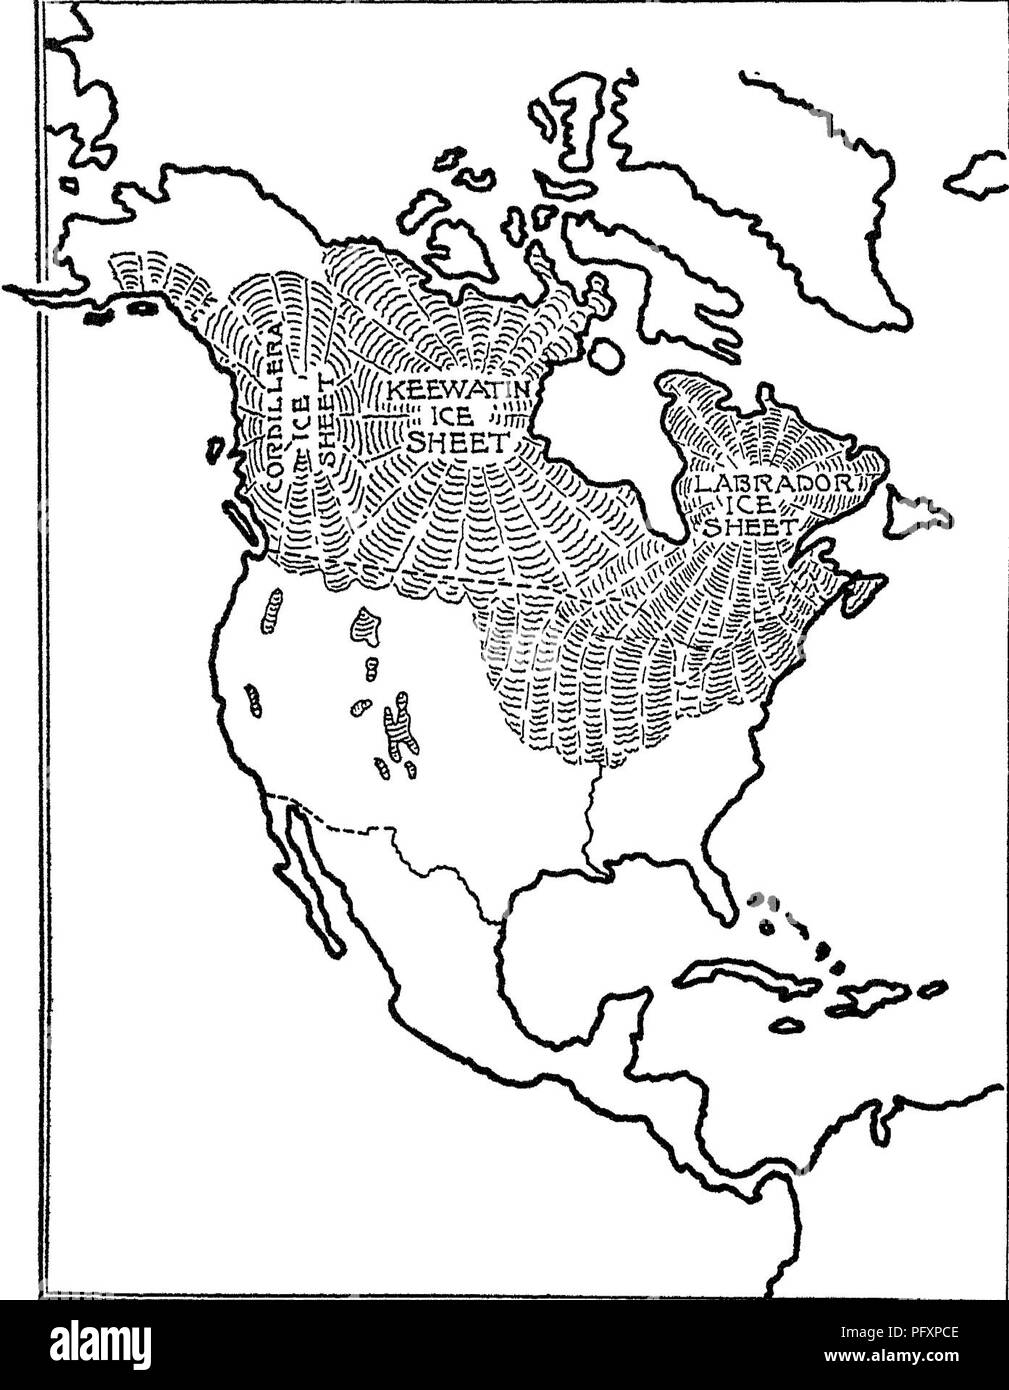 Map Of North America Black and White Stock Photos & Images ... Sketch Map Of North America on map of ocean sketch, map of hawaii sketch, map of kentucky sketch, map of bahrain sketch, map of new france sketch, africa map sketch, map of caribbean sketch, map of hong kong sketch, map of zambia sketch, map of world sketch, map of new jersey sketch, usa map sketch, map of mauritius sketch,